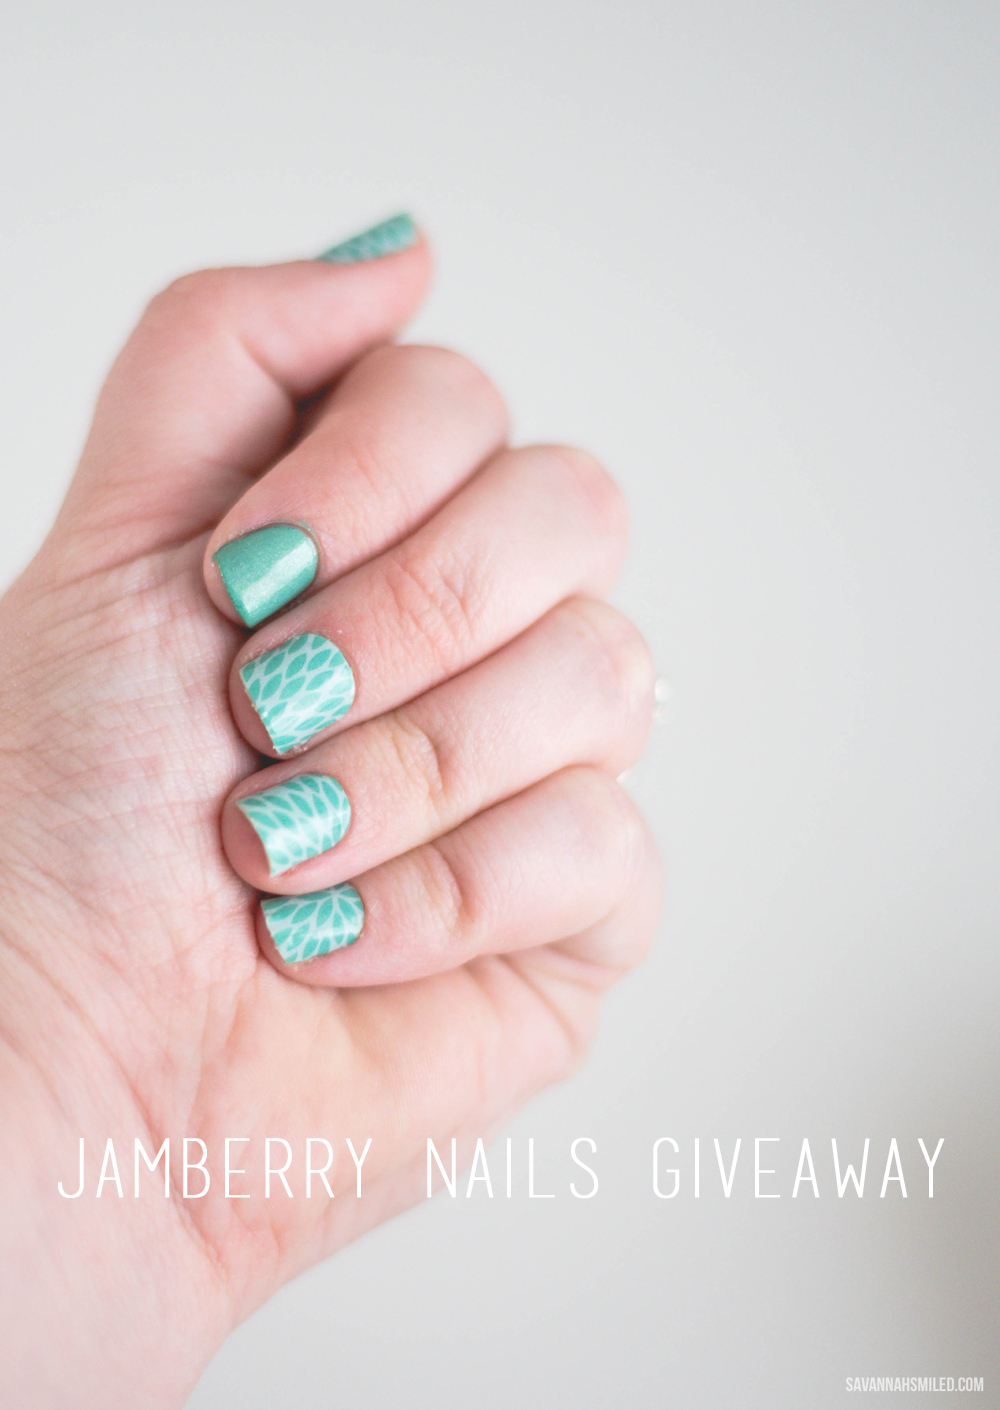 jamberry-nails-giveaway-7.png